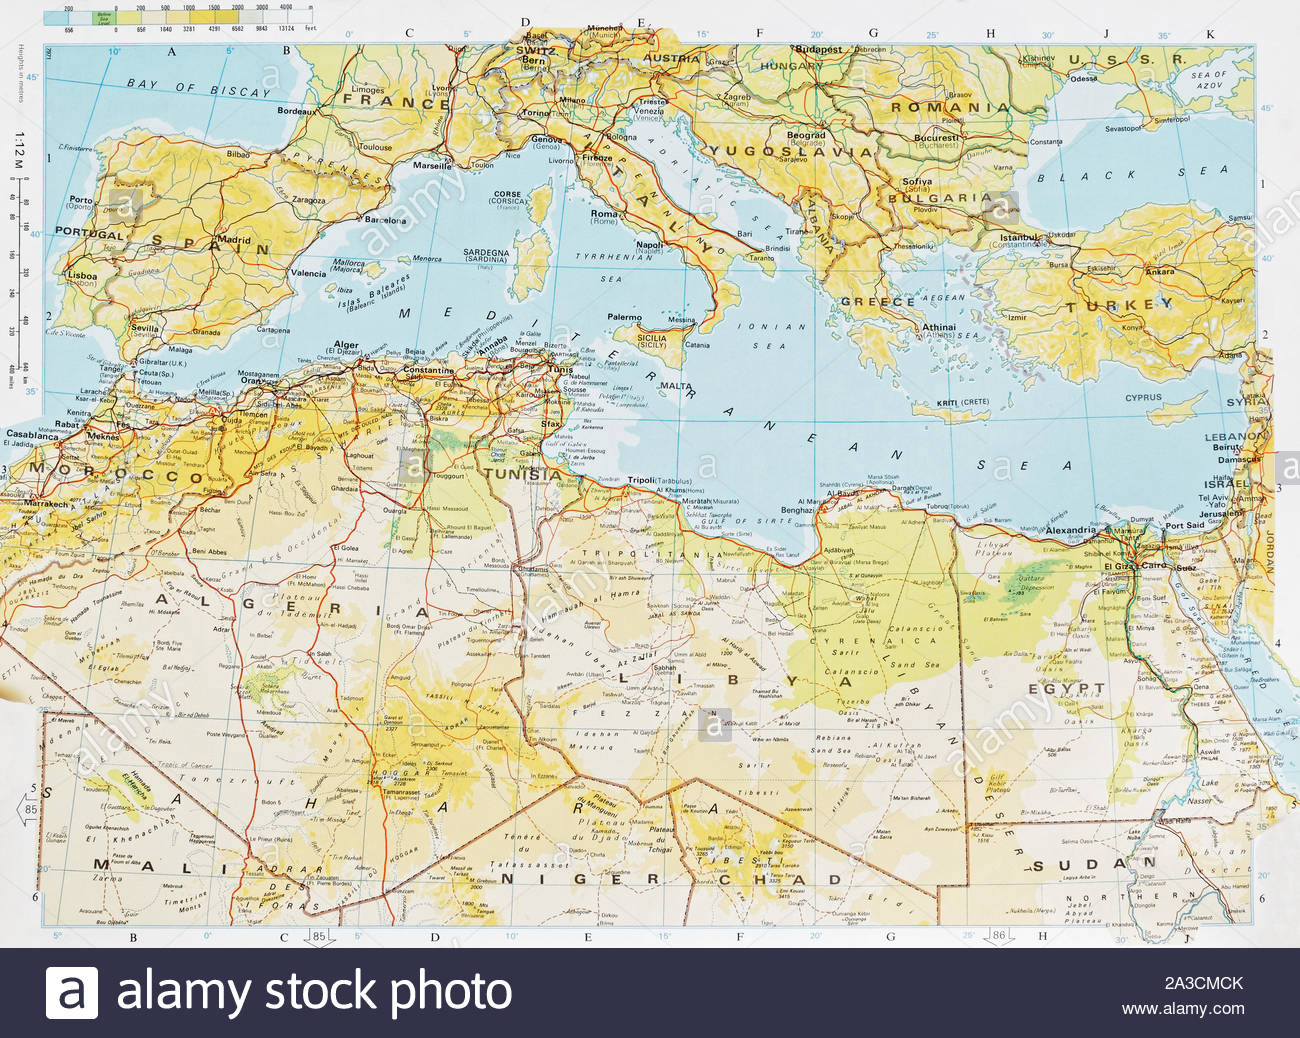 Mediterranean Region Map Stockfotos & Mediterranean Region ...